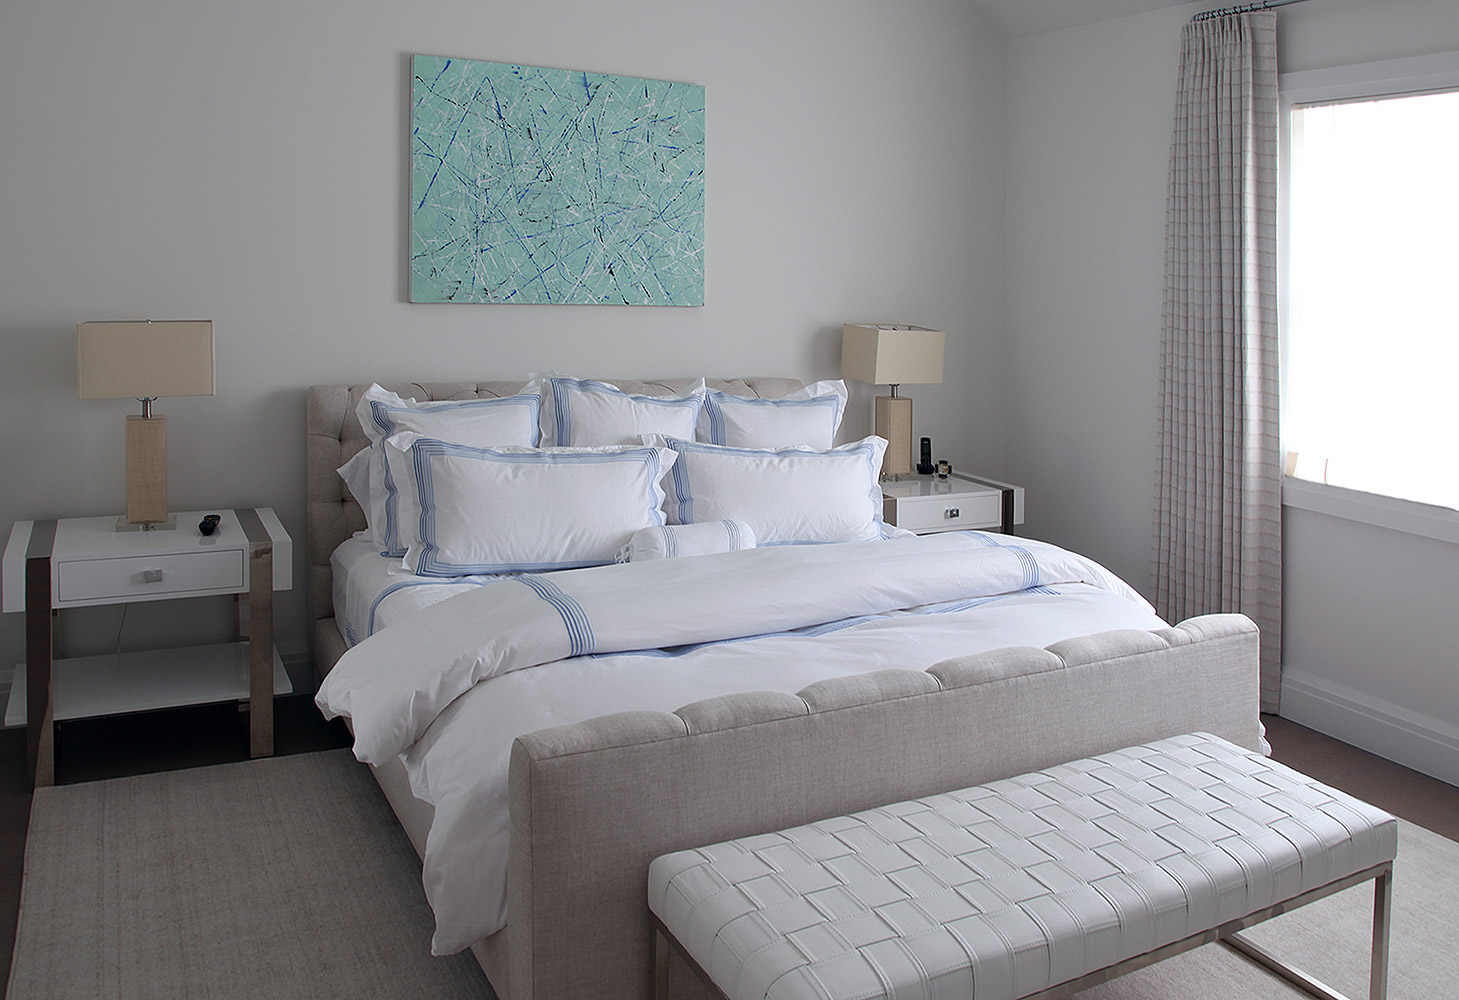 22-es-bw-guest-bed-2